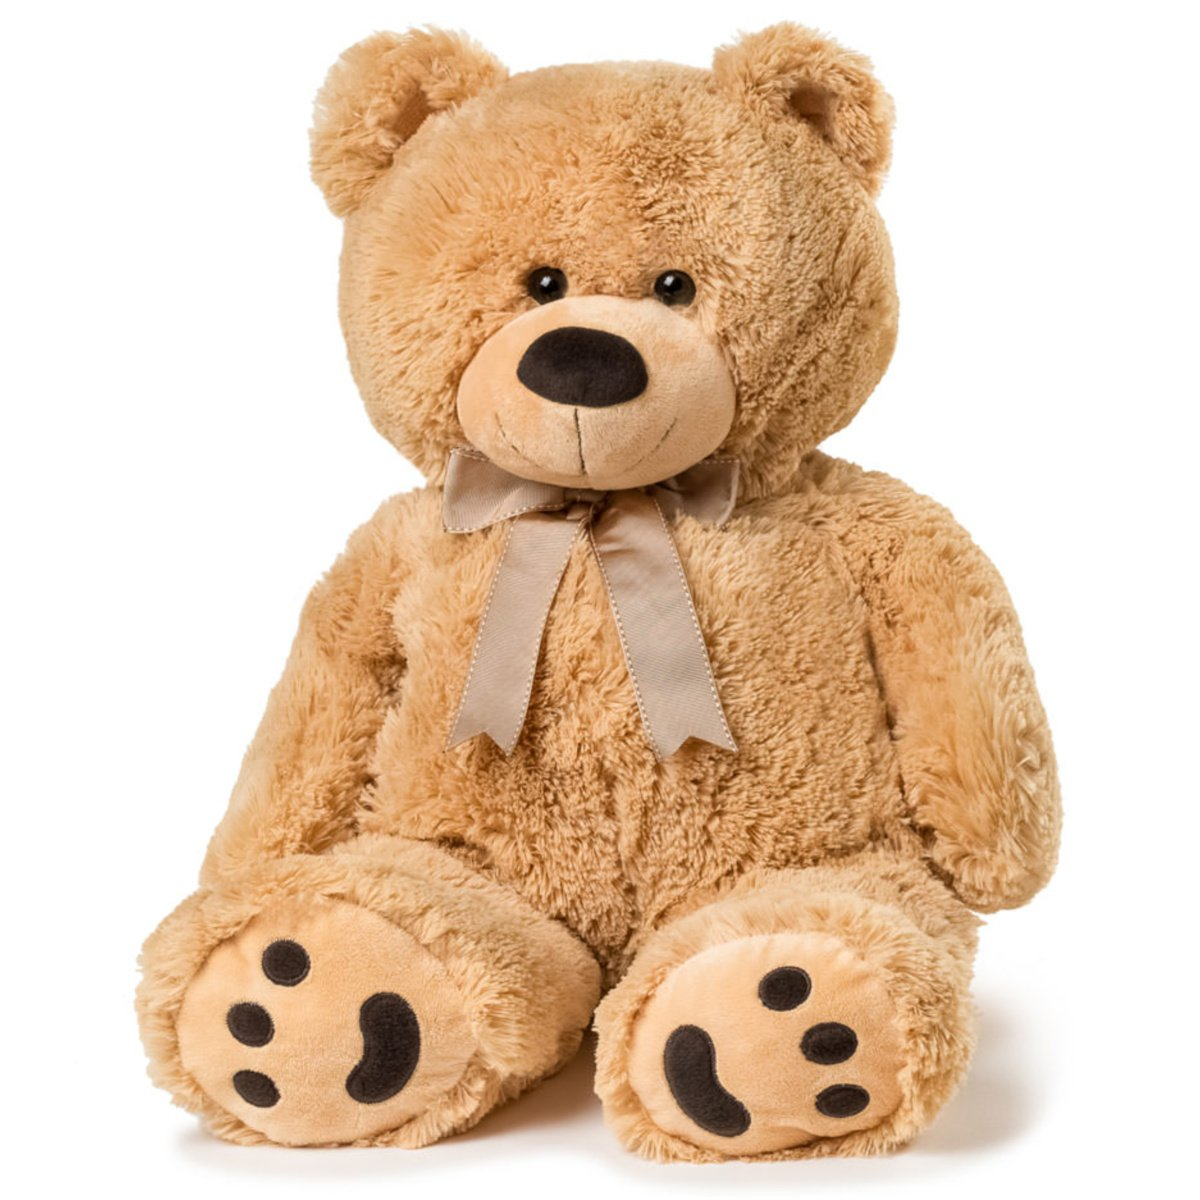 Teddy Bear (may vary)